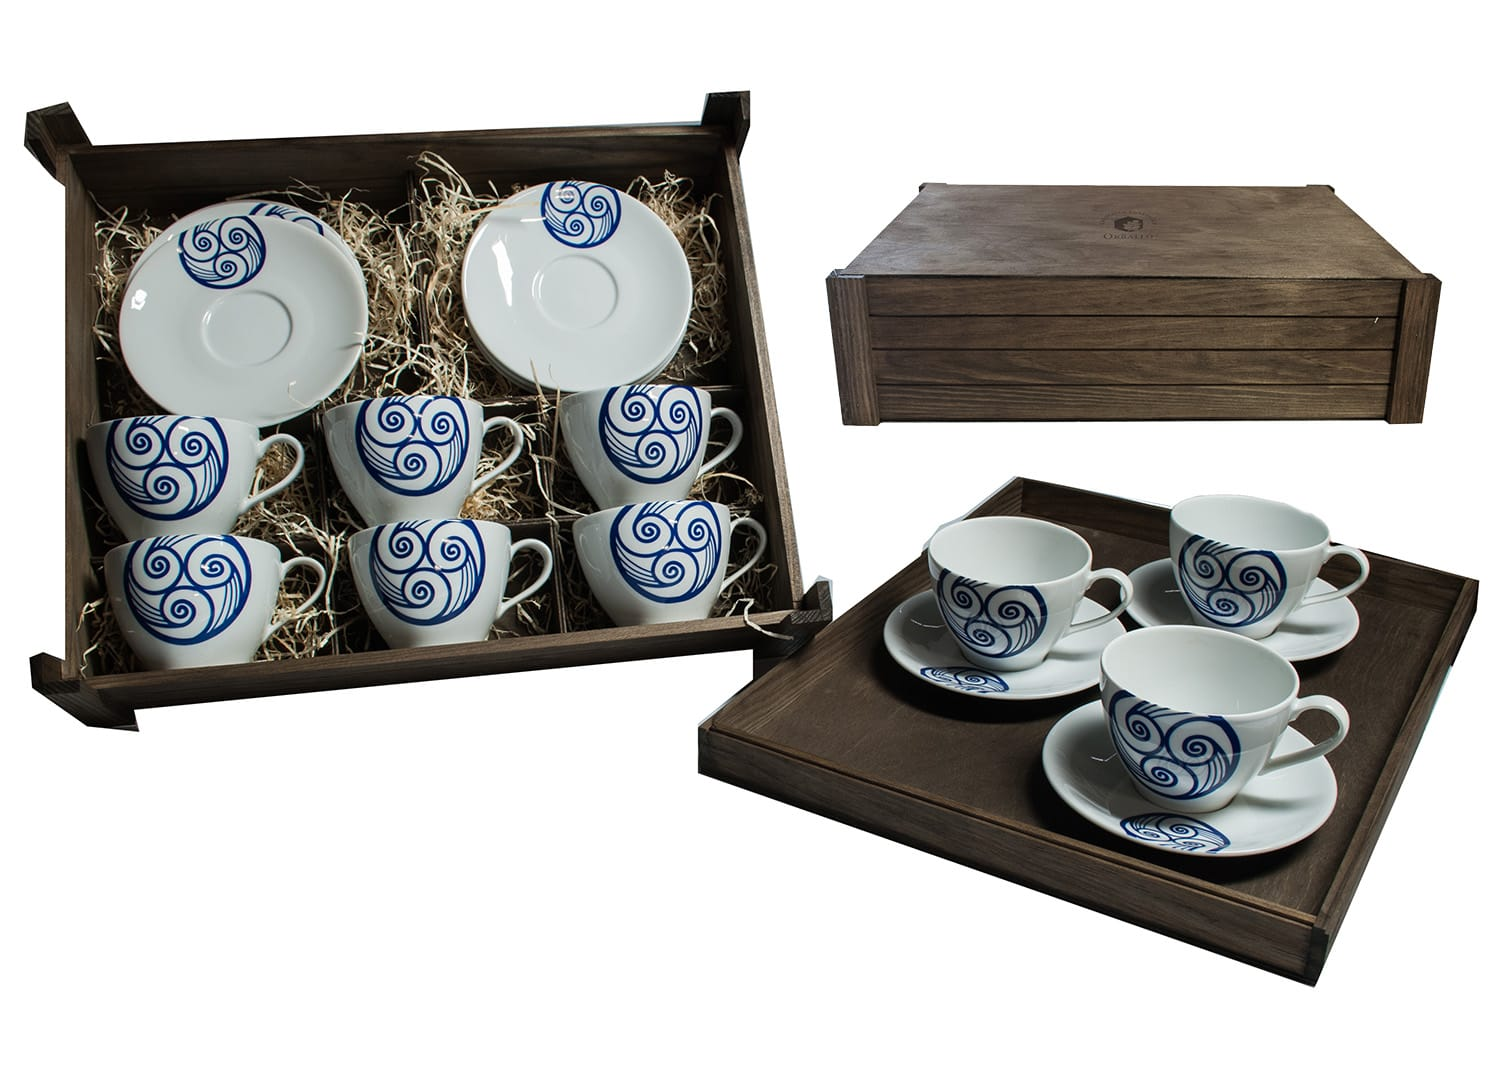 Six-mug breakfast set in wooden box. Volare Desing, Lua Collection